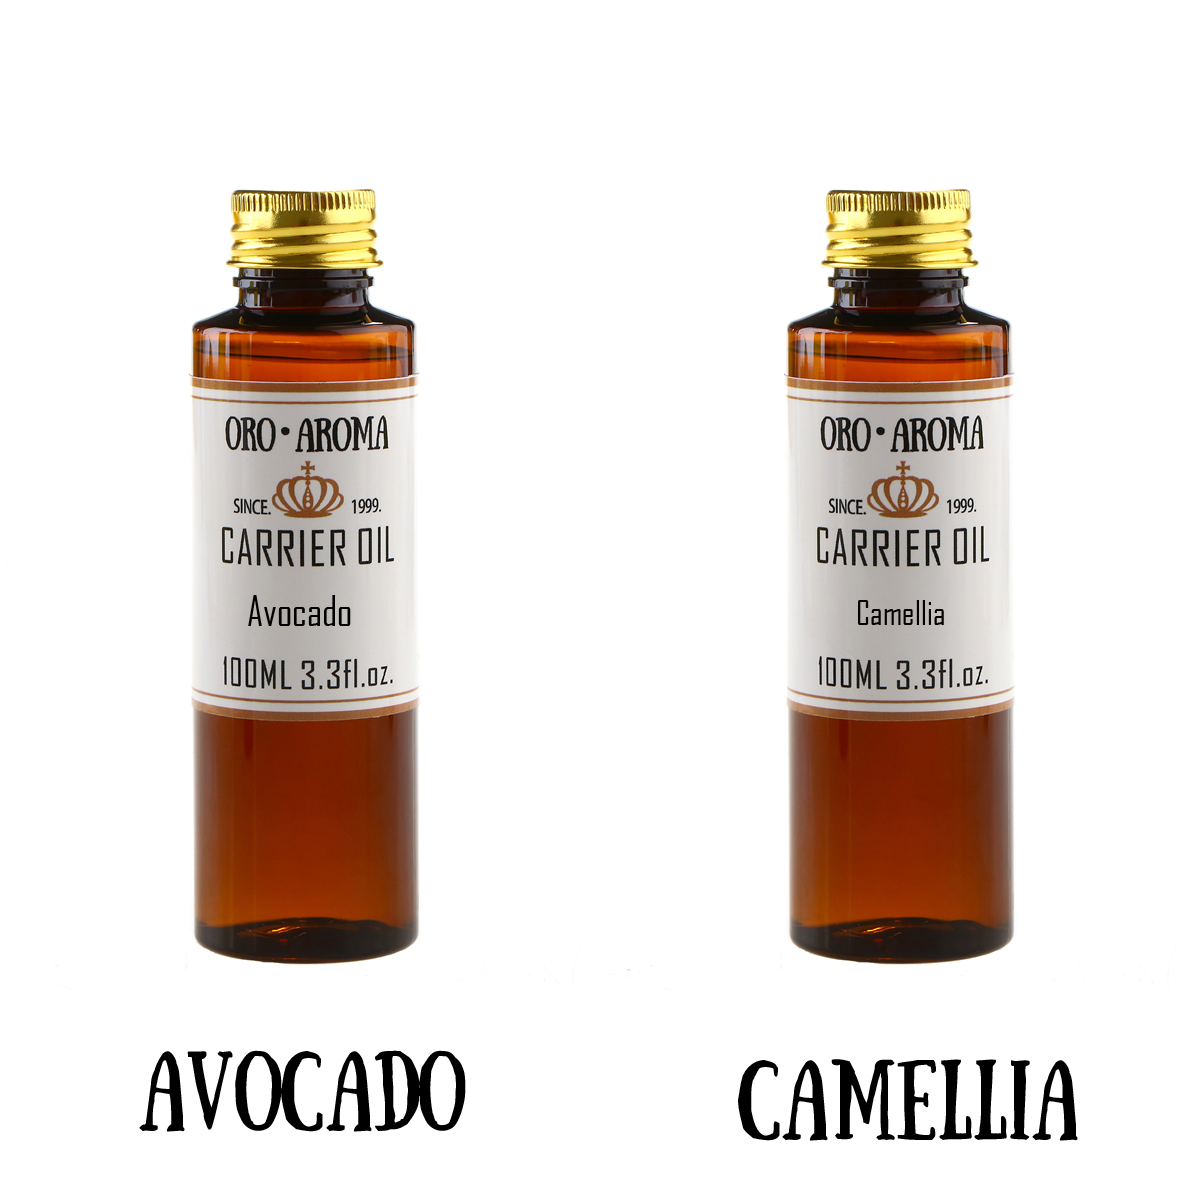 Famous brand oroaroma natural avocado Camellia essential oil natural aromatherapy high-capacity skin body care 100ml*2 high quality precision skin analyzer digital lcd display facial body skin moisture oil tester meter analysis face care tool